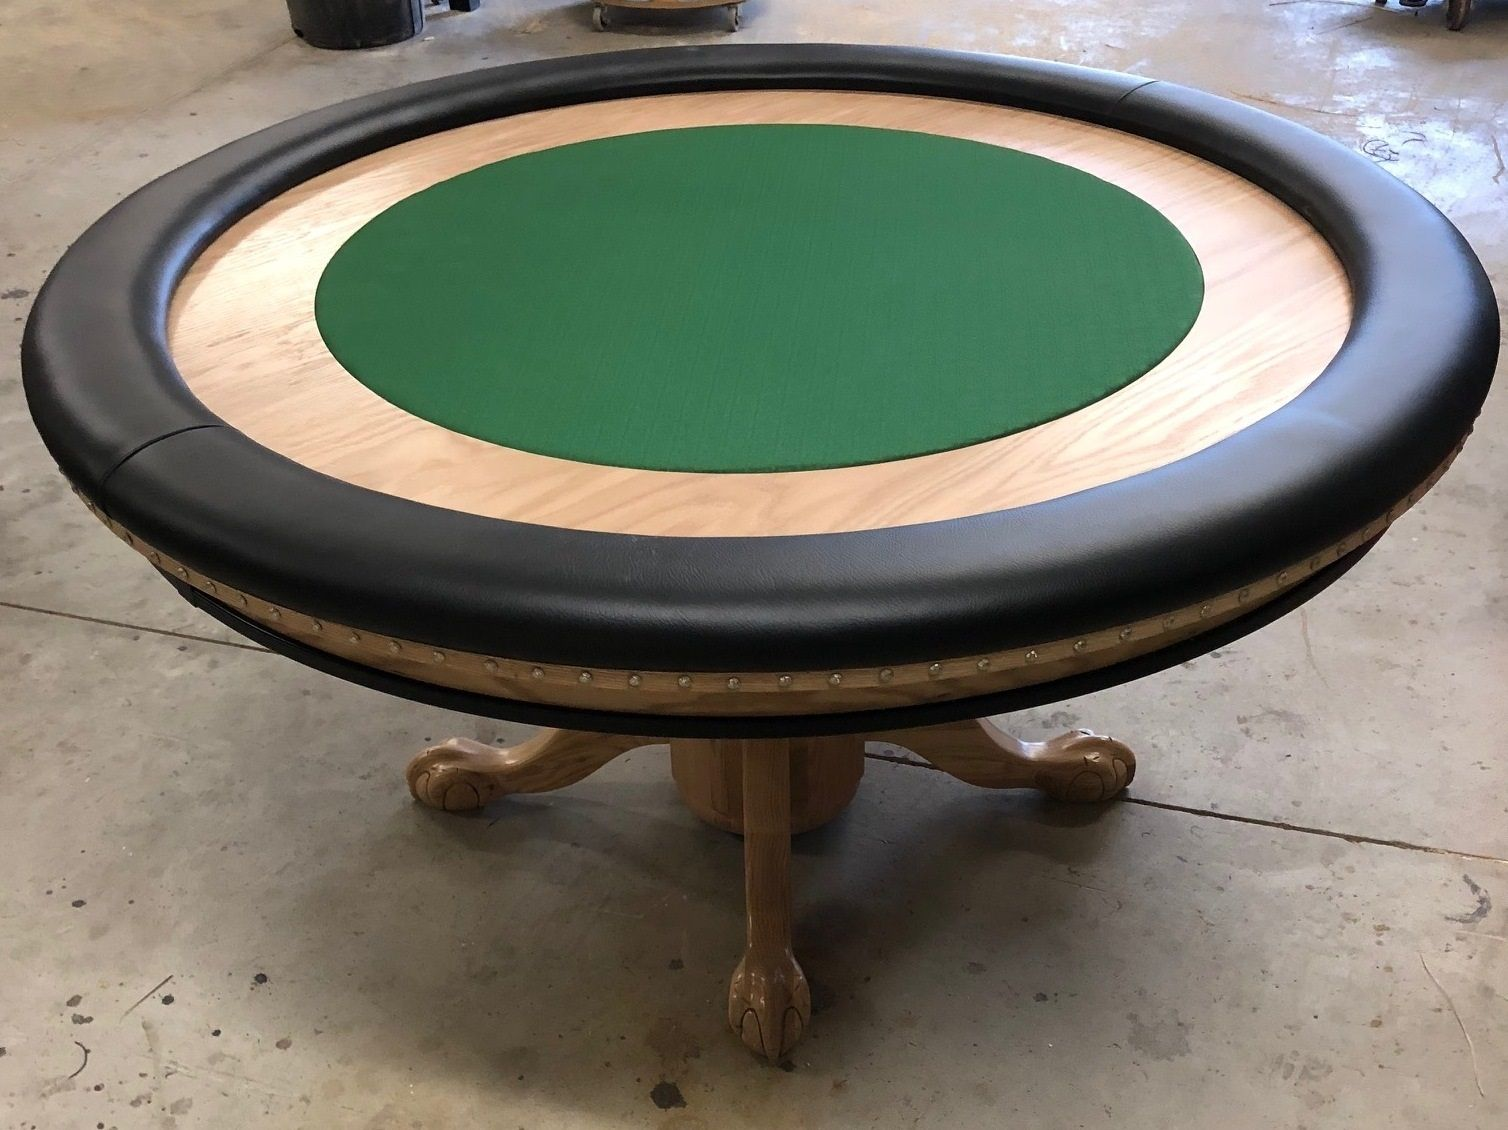 Round Poker Table With Natural Stain Poker Table Round Poker Table Poker